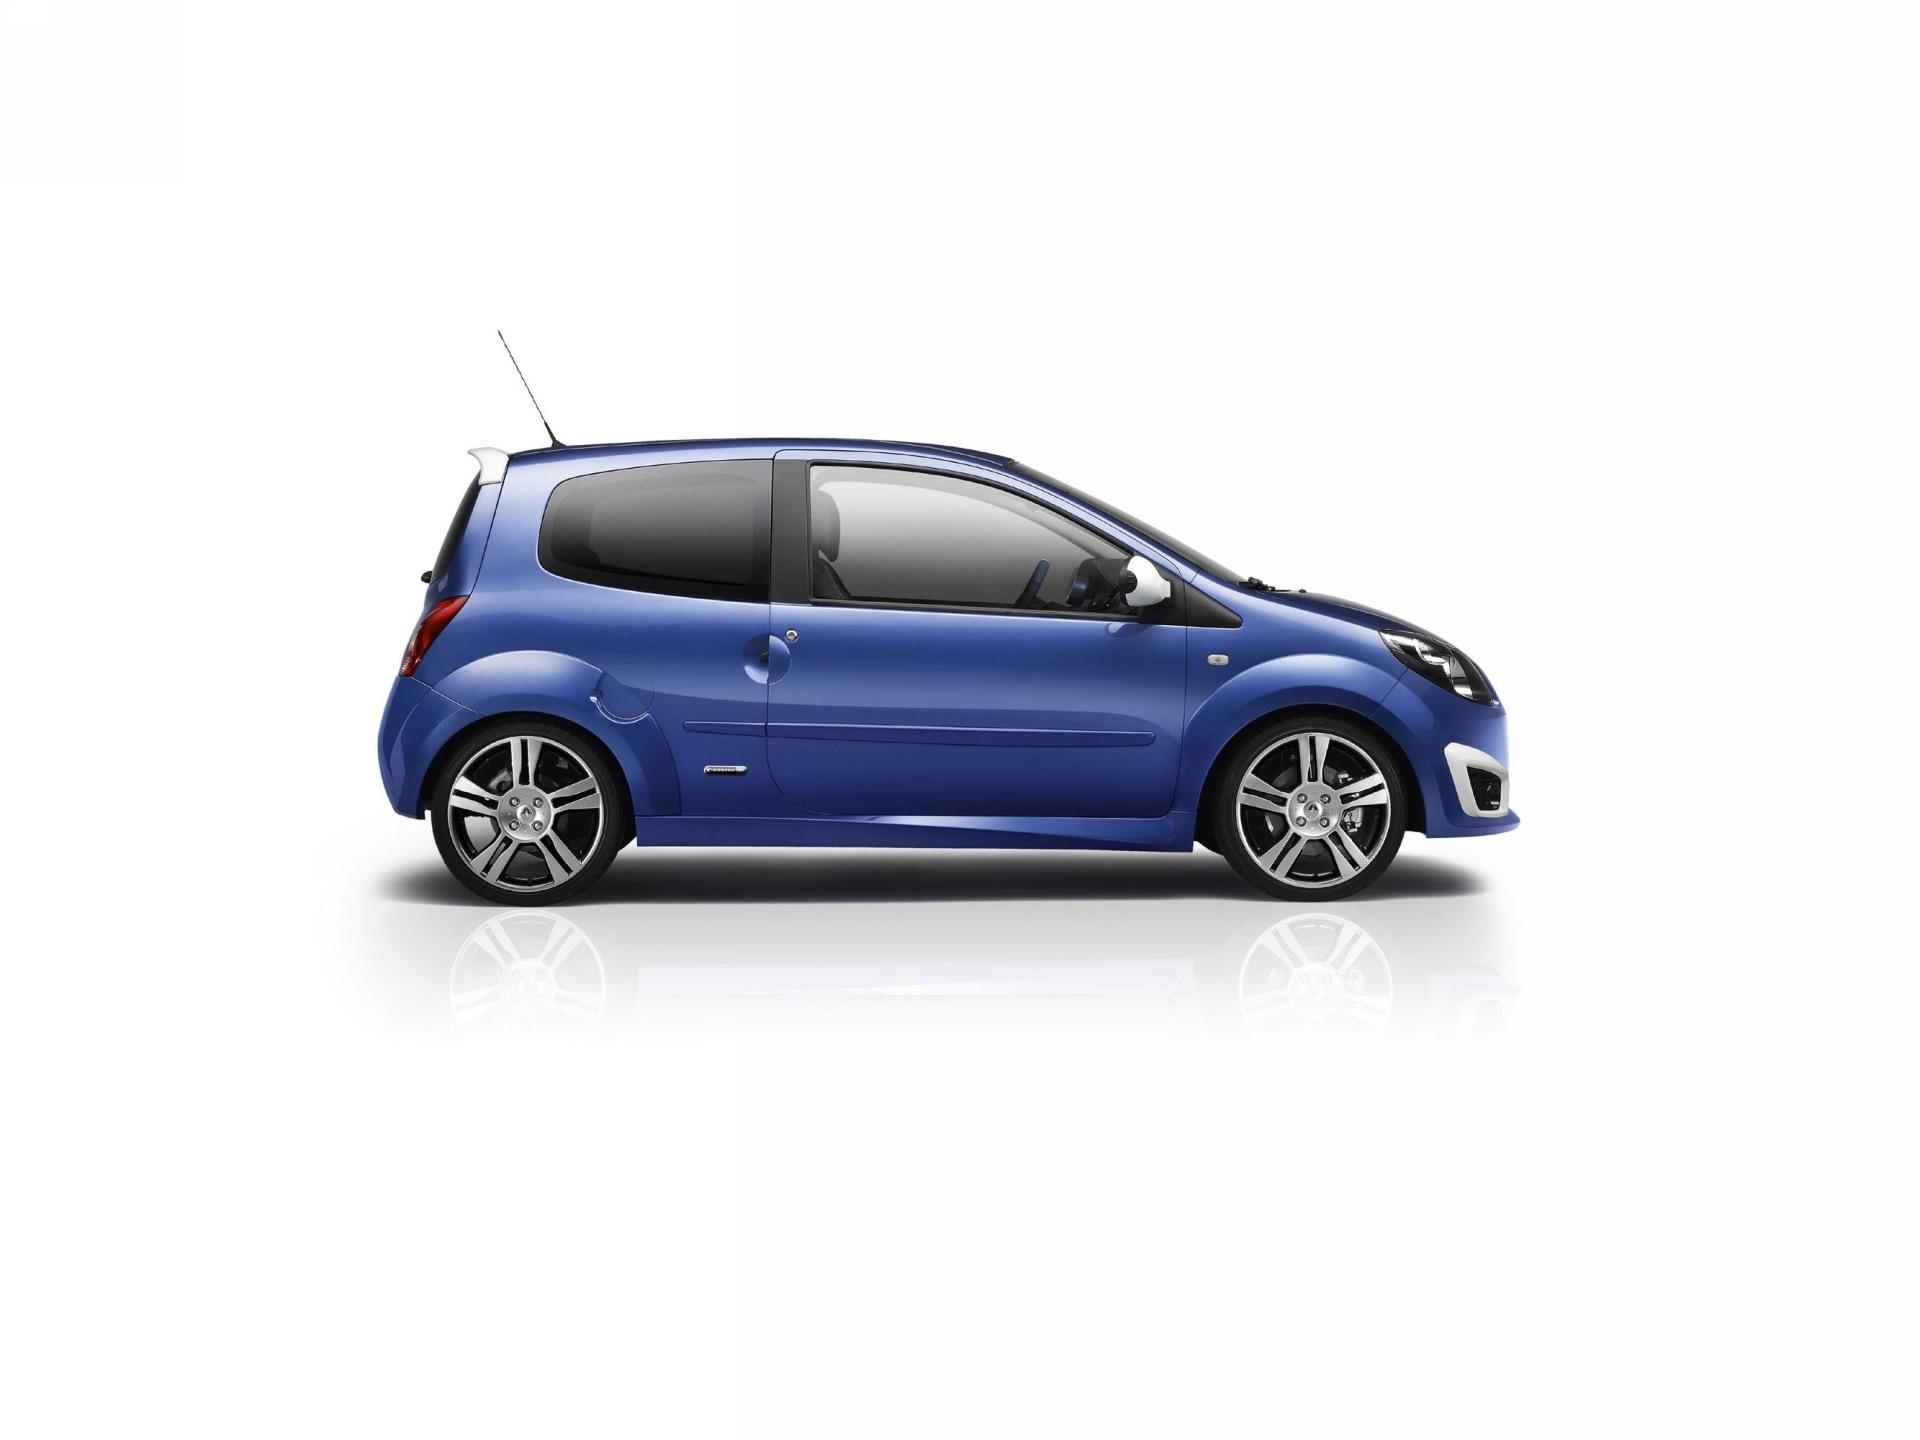 2010 renault twingo gordini r s technical specifications and data engine dimensions and. Black Bedroom Furniture Sets. Home Design Ideas